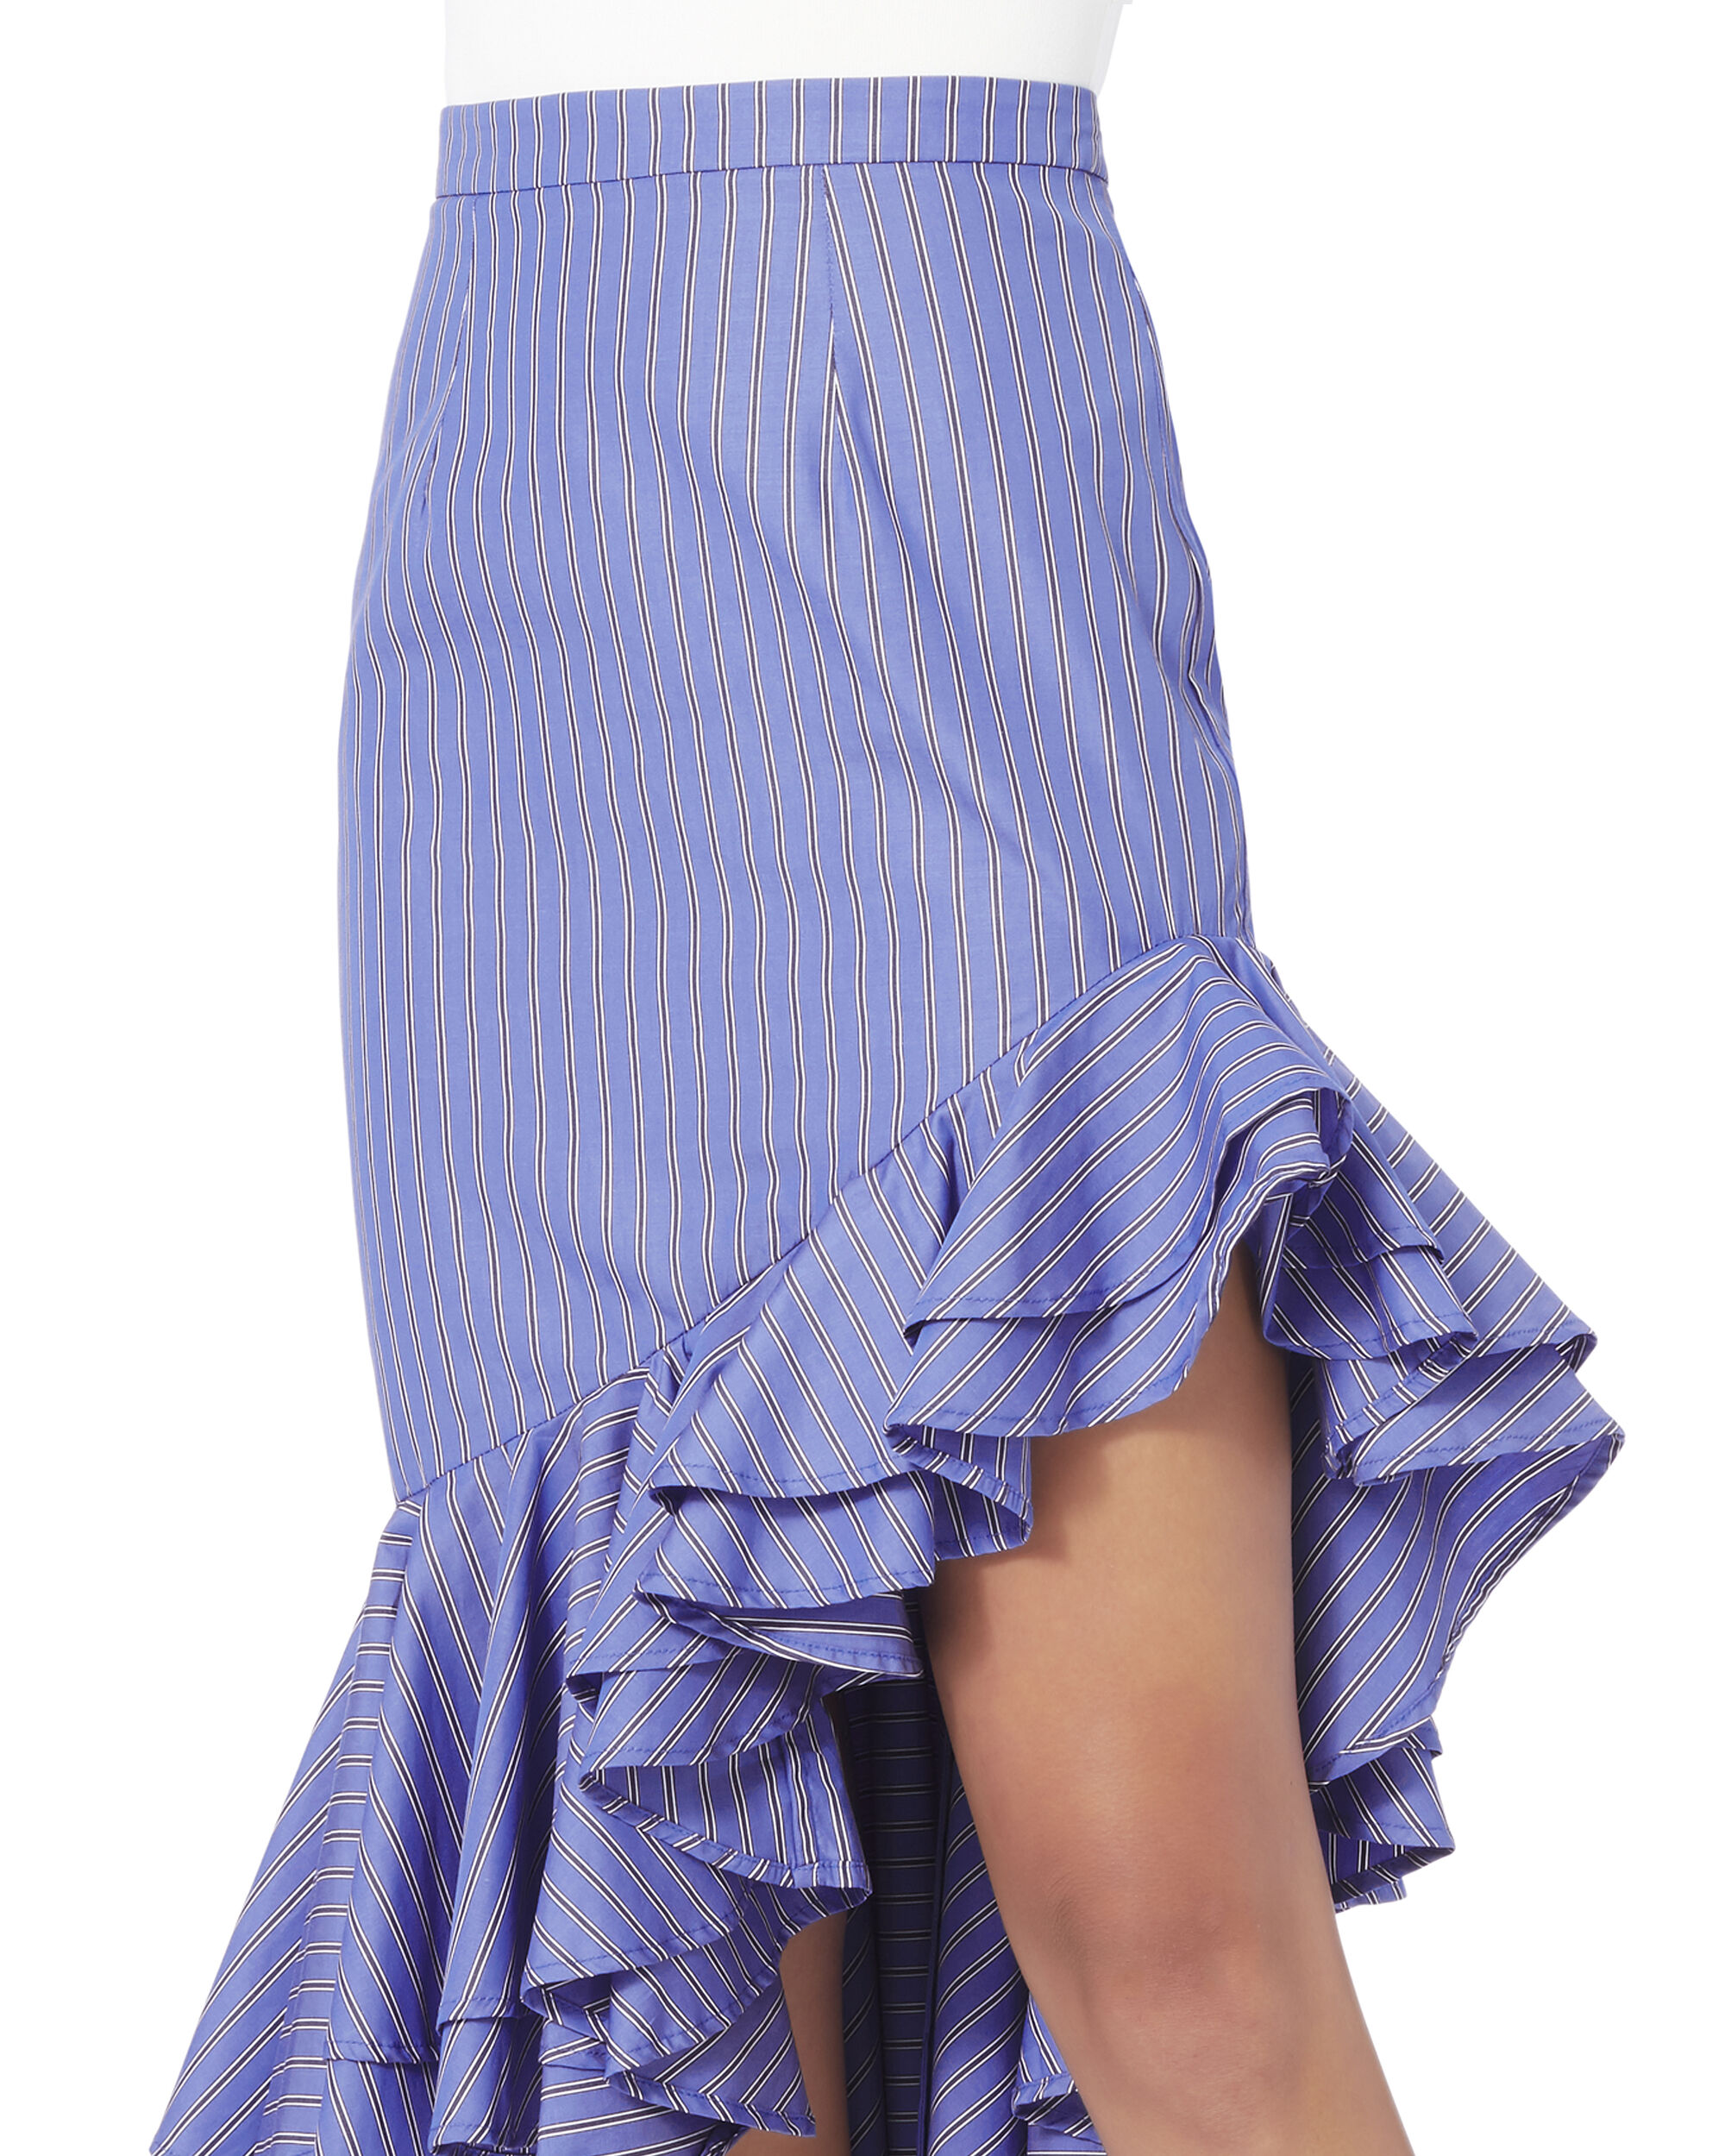 I Just Want To Be Free Ruffle Skirt, STRIPE, hi-res